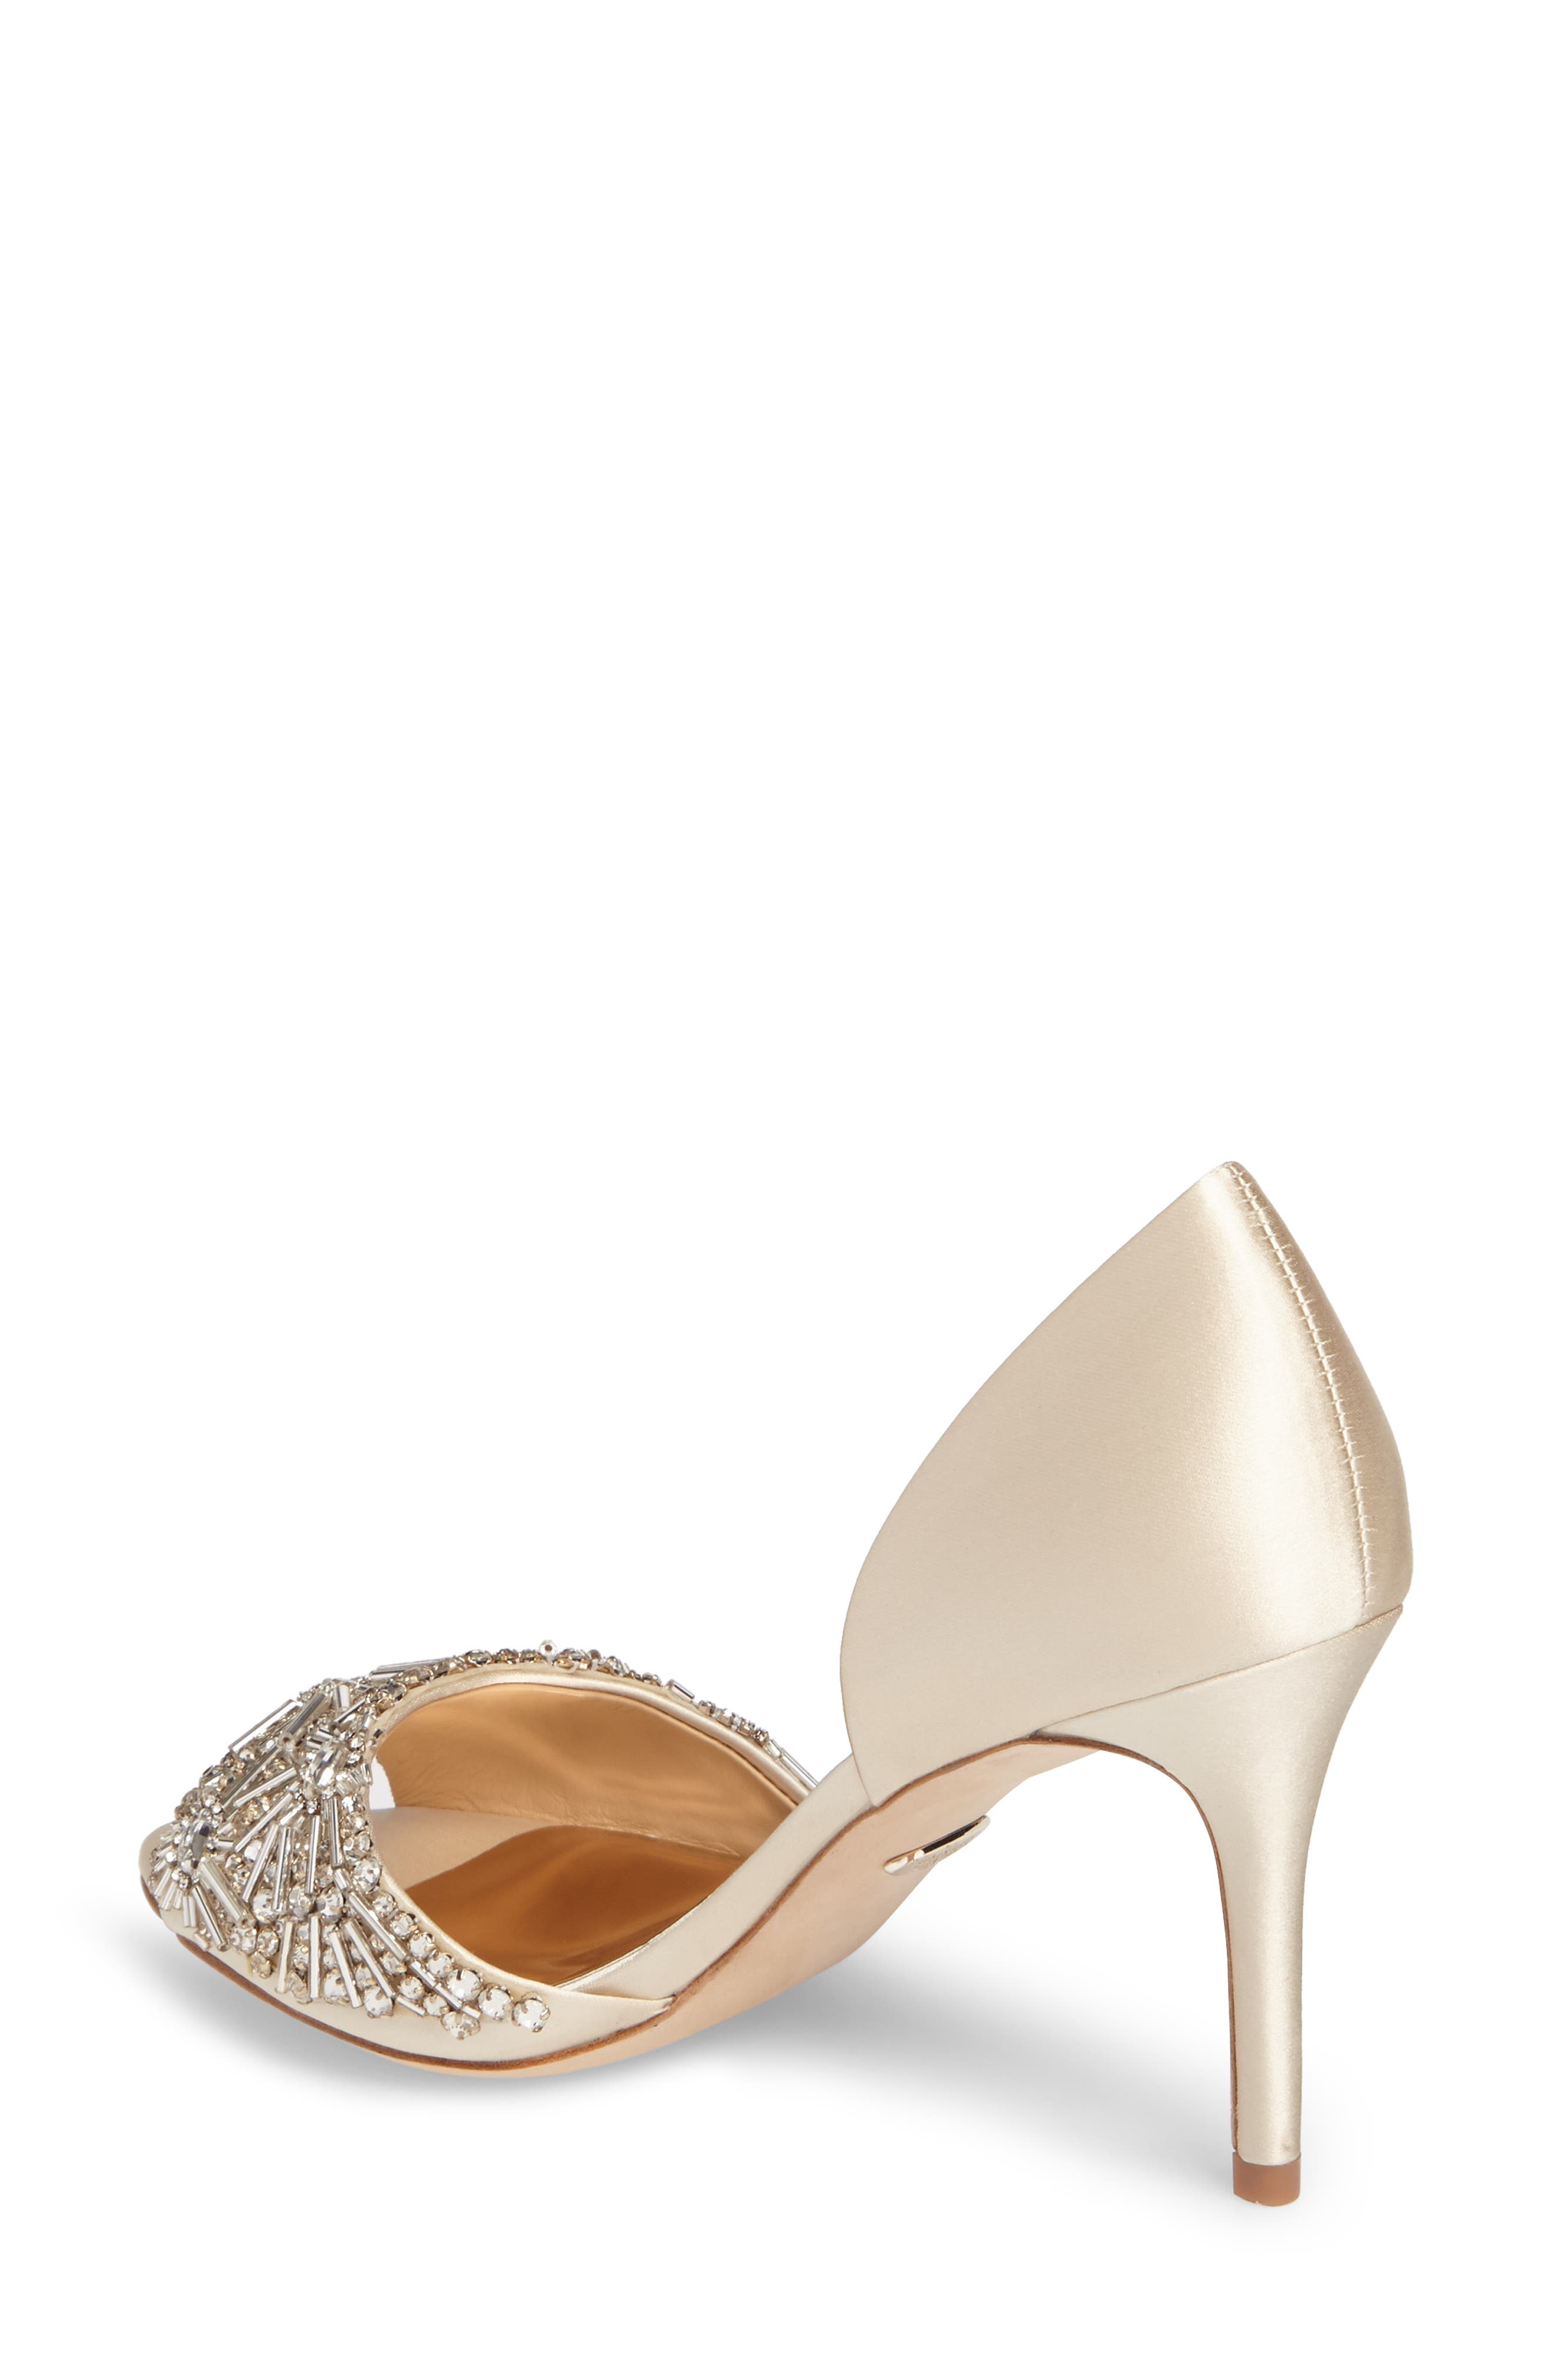 Maria Embellished d'Orsay Pump,                             Alternate thumbnail 12, color,